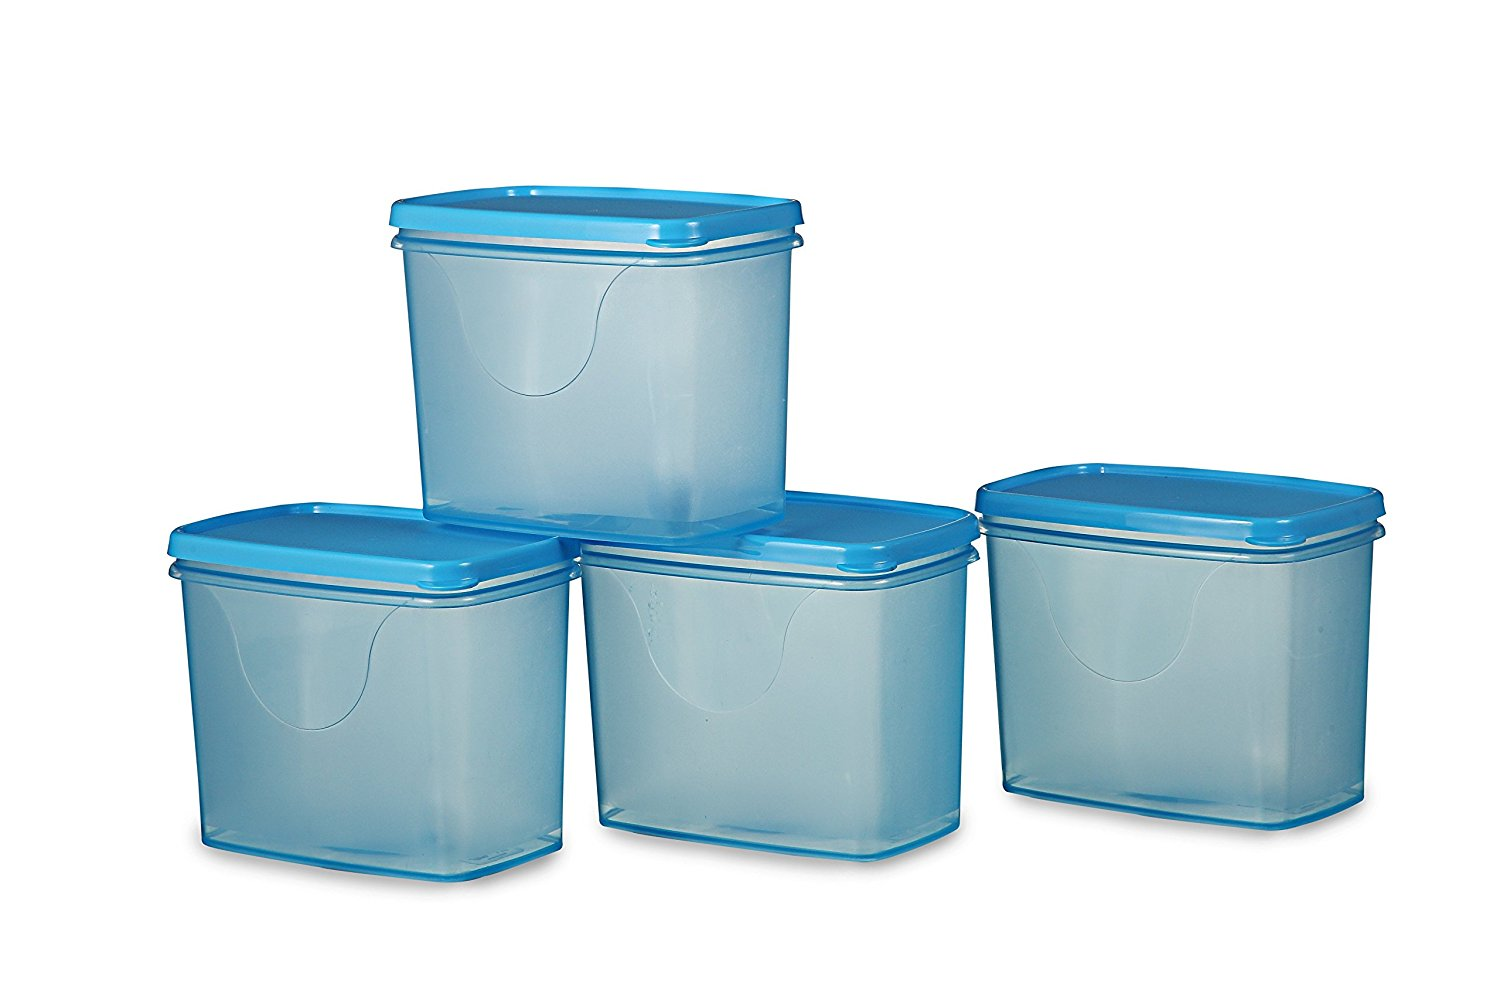 0e6ef976ec All-Time-Plastics-Sleek-Container-Set-850ml-Set-of-4-Blue-Rs-111-only-amazon .jpg